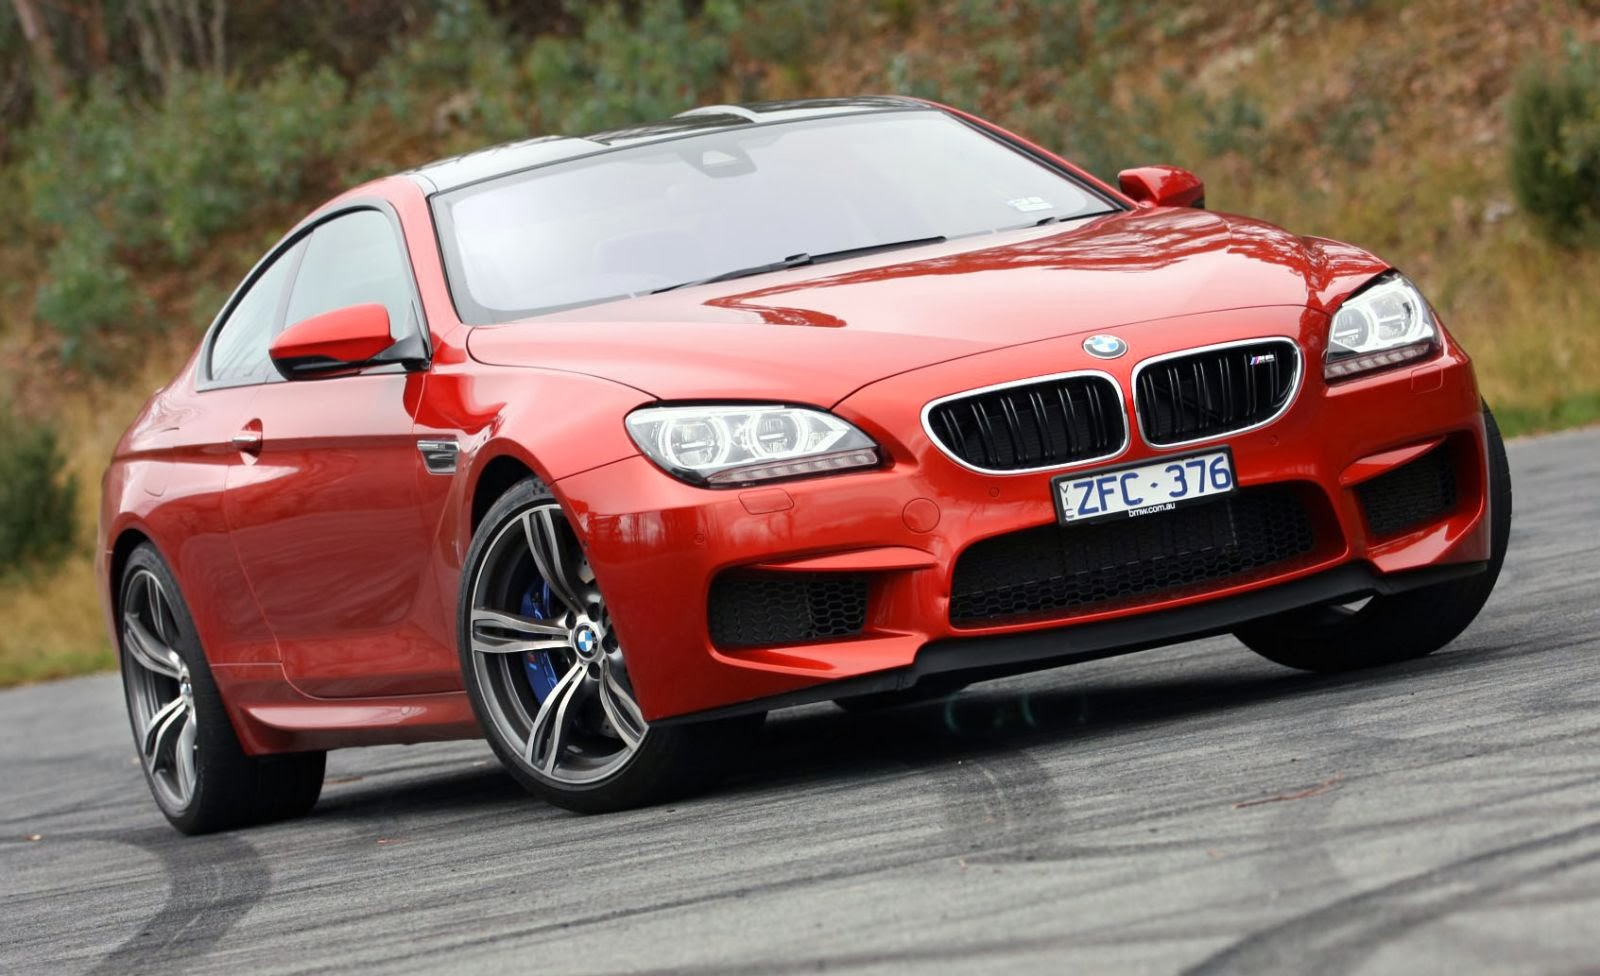 Motorcycle And Car Drift Wallpaper Bmw M6 Coupe 2014 Red Hd Wallpaper